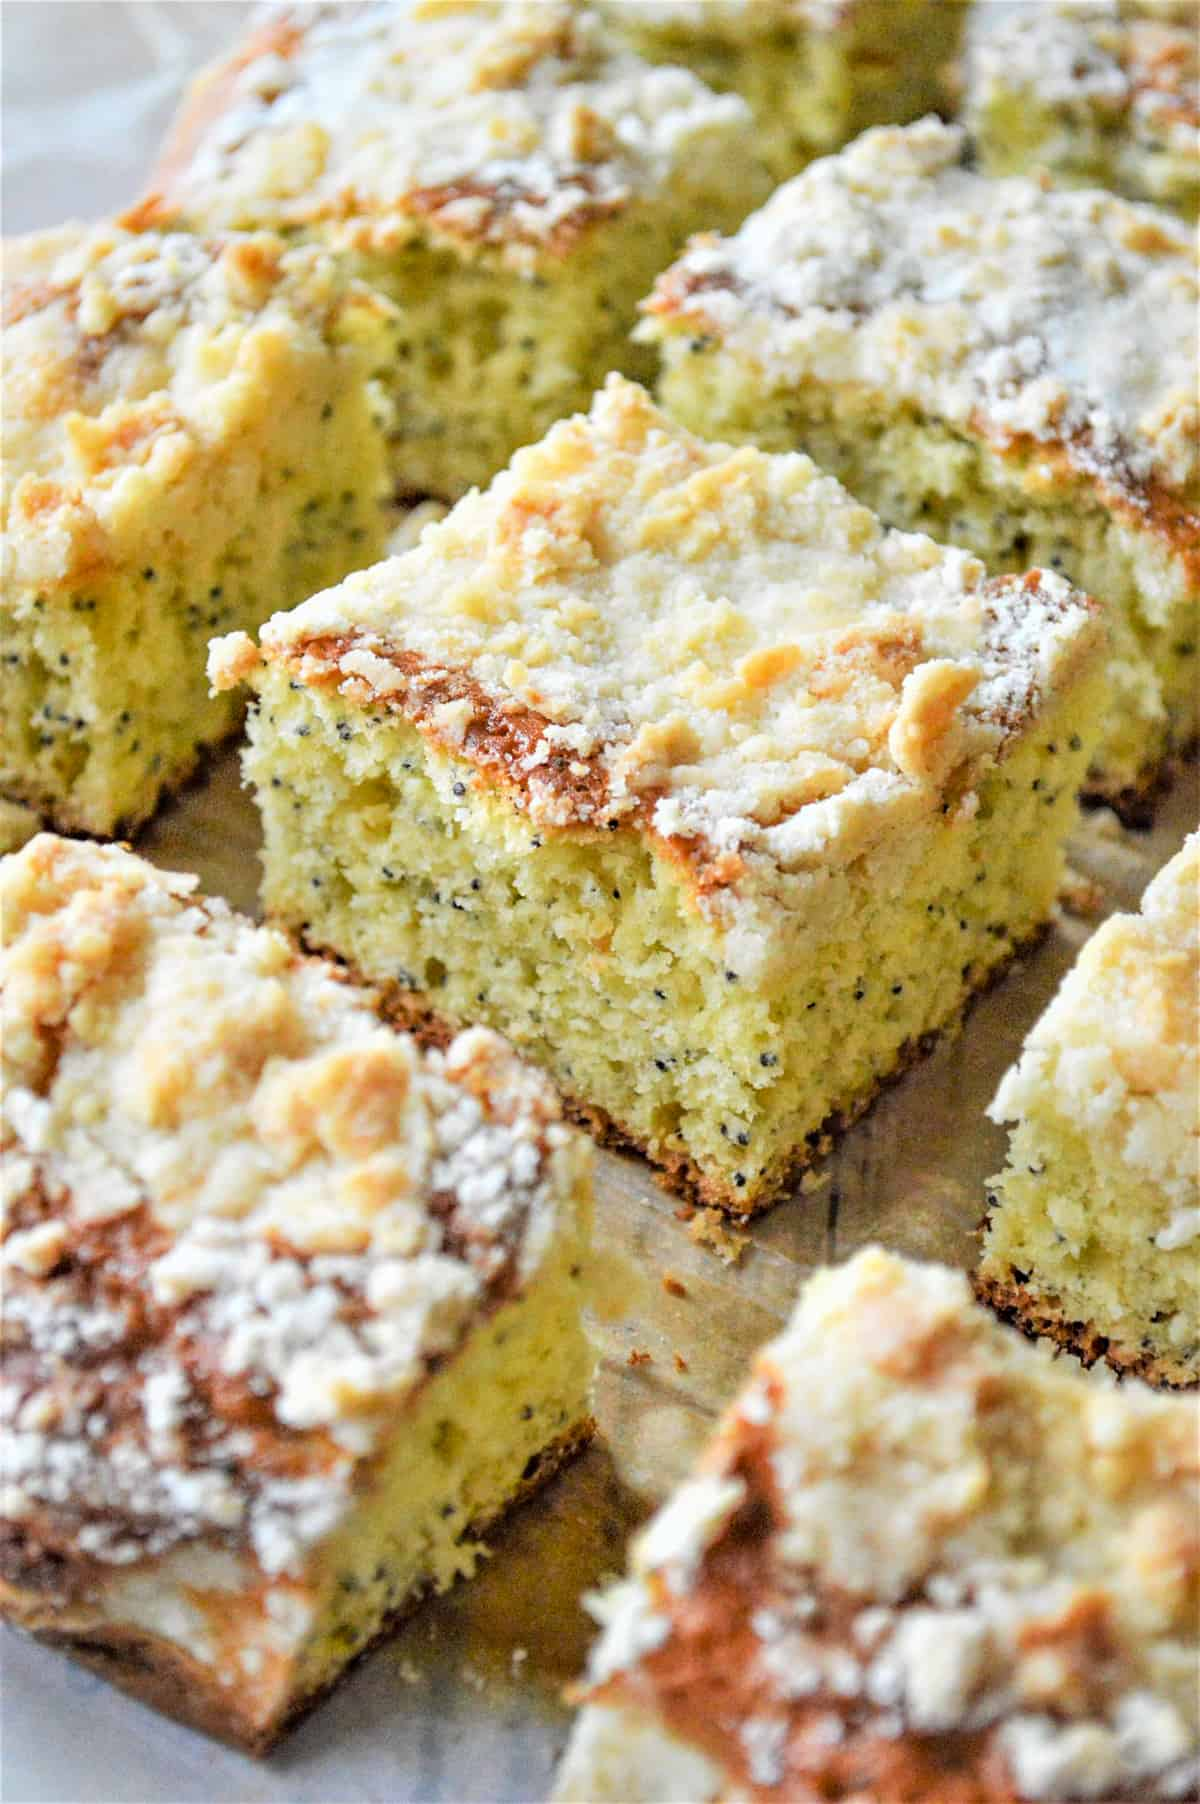 Coffee cake cut into squares